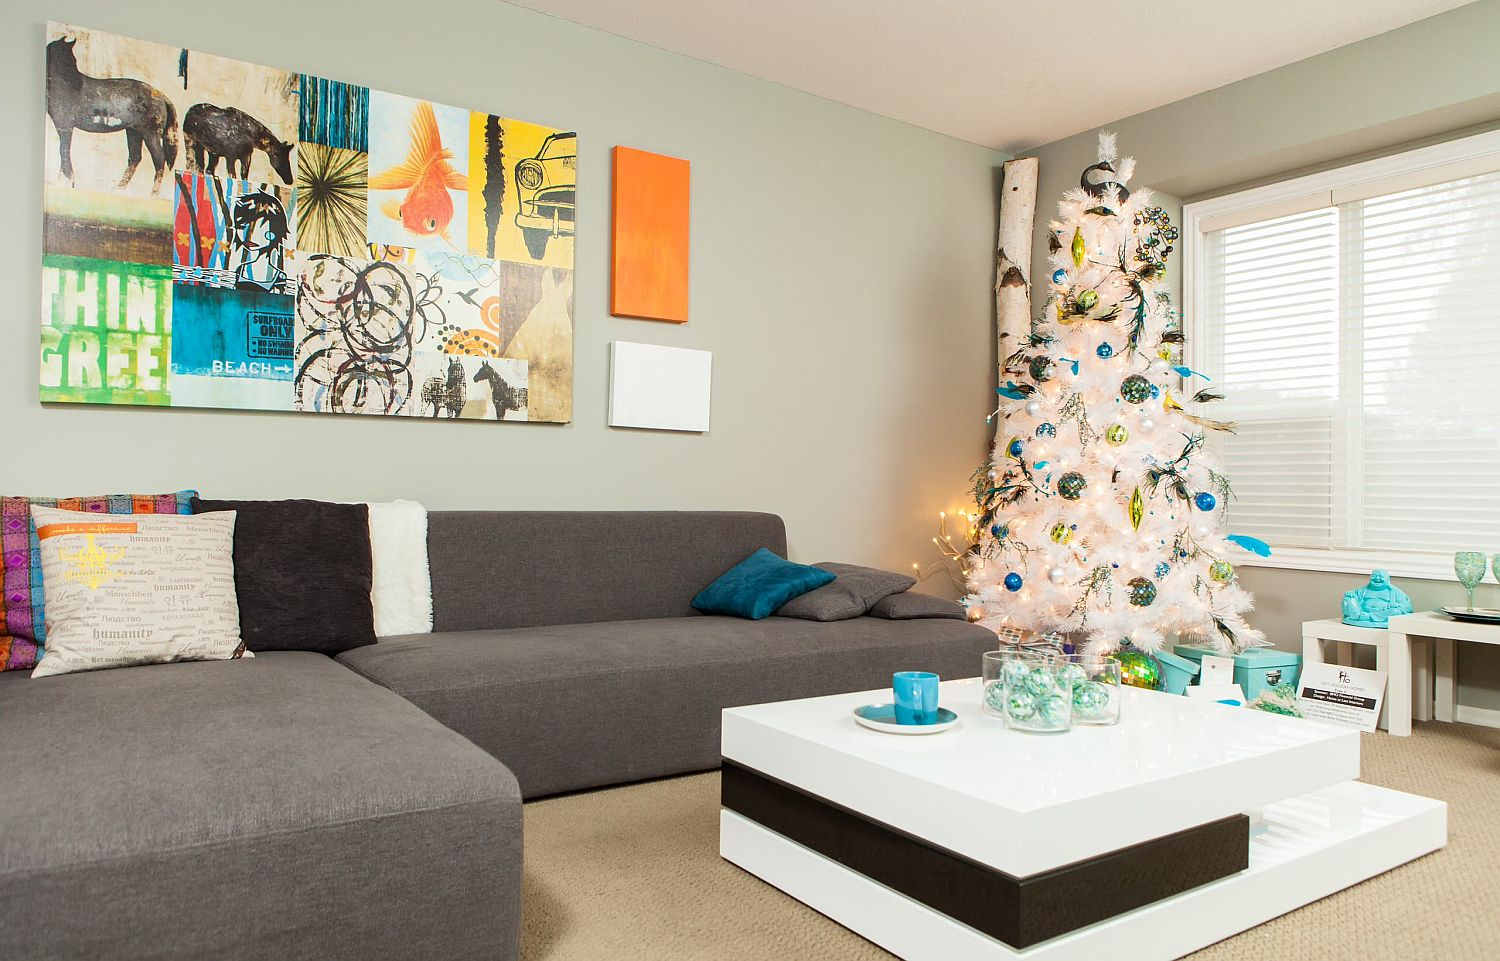 Dashing-wall-art-addition-behind-the-couch-for-a-living-room-with-festive-charm